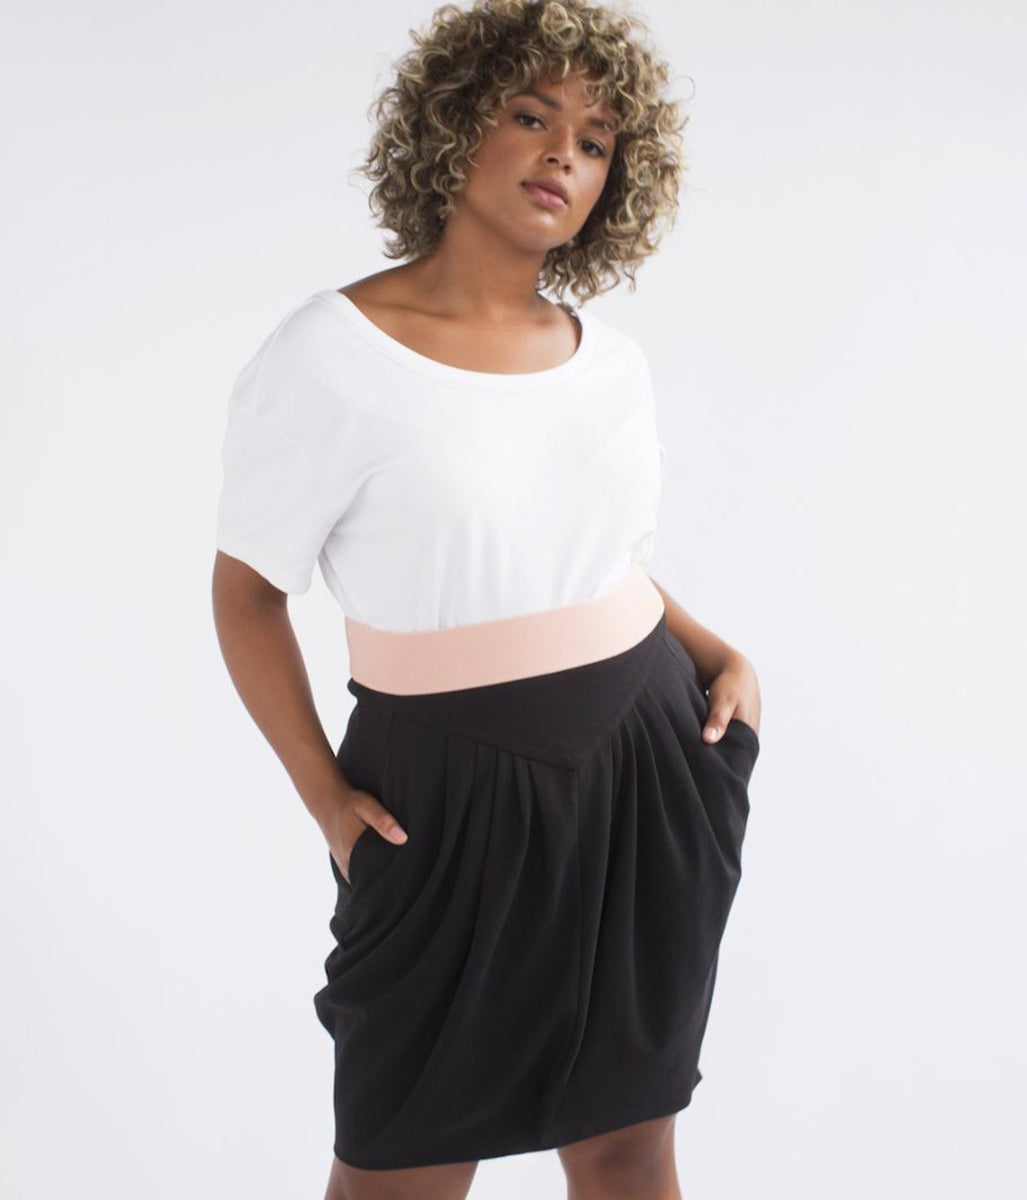 Favie Curvy Fashion See Rose Go Rock Vorderansicht